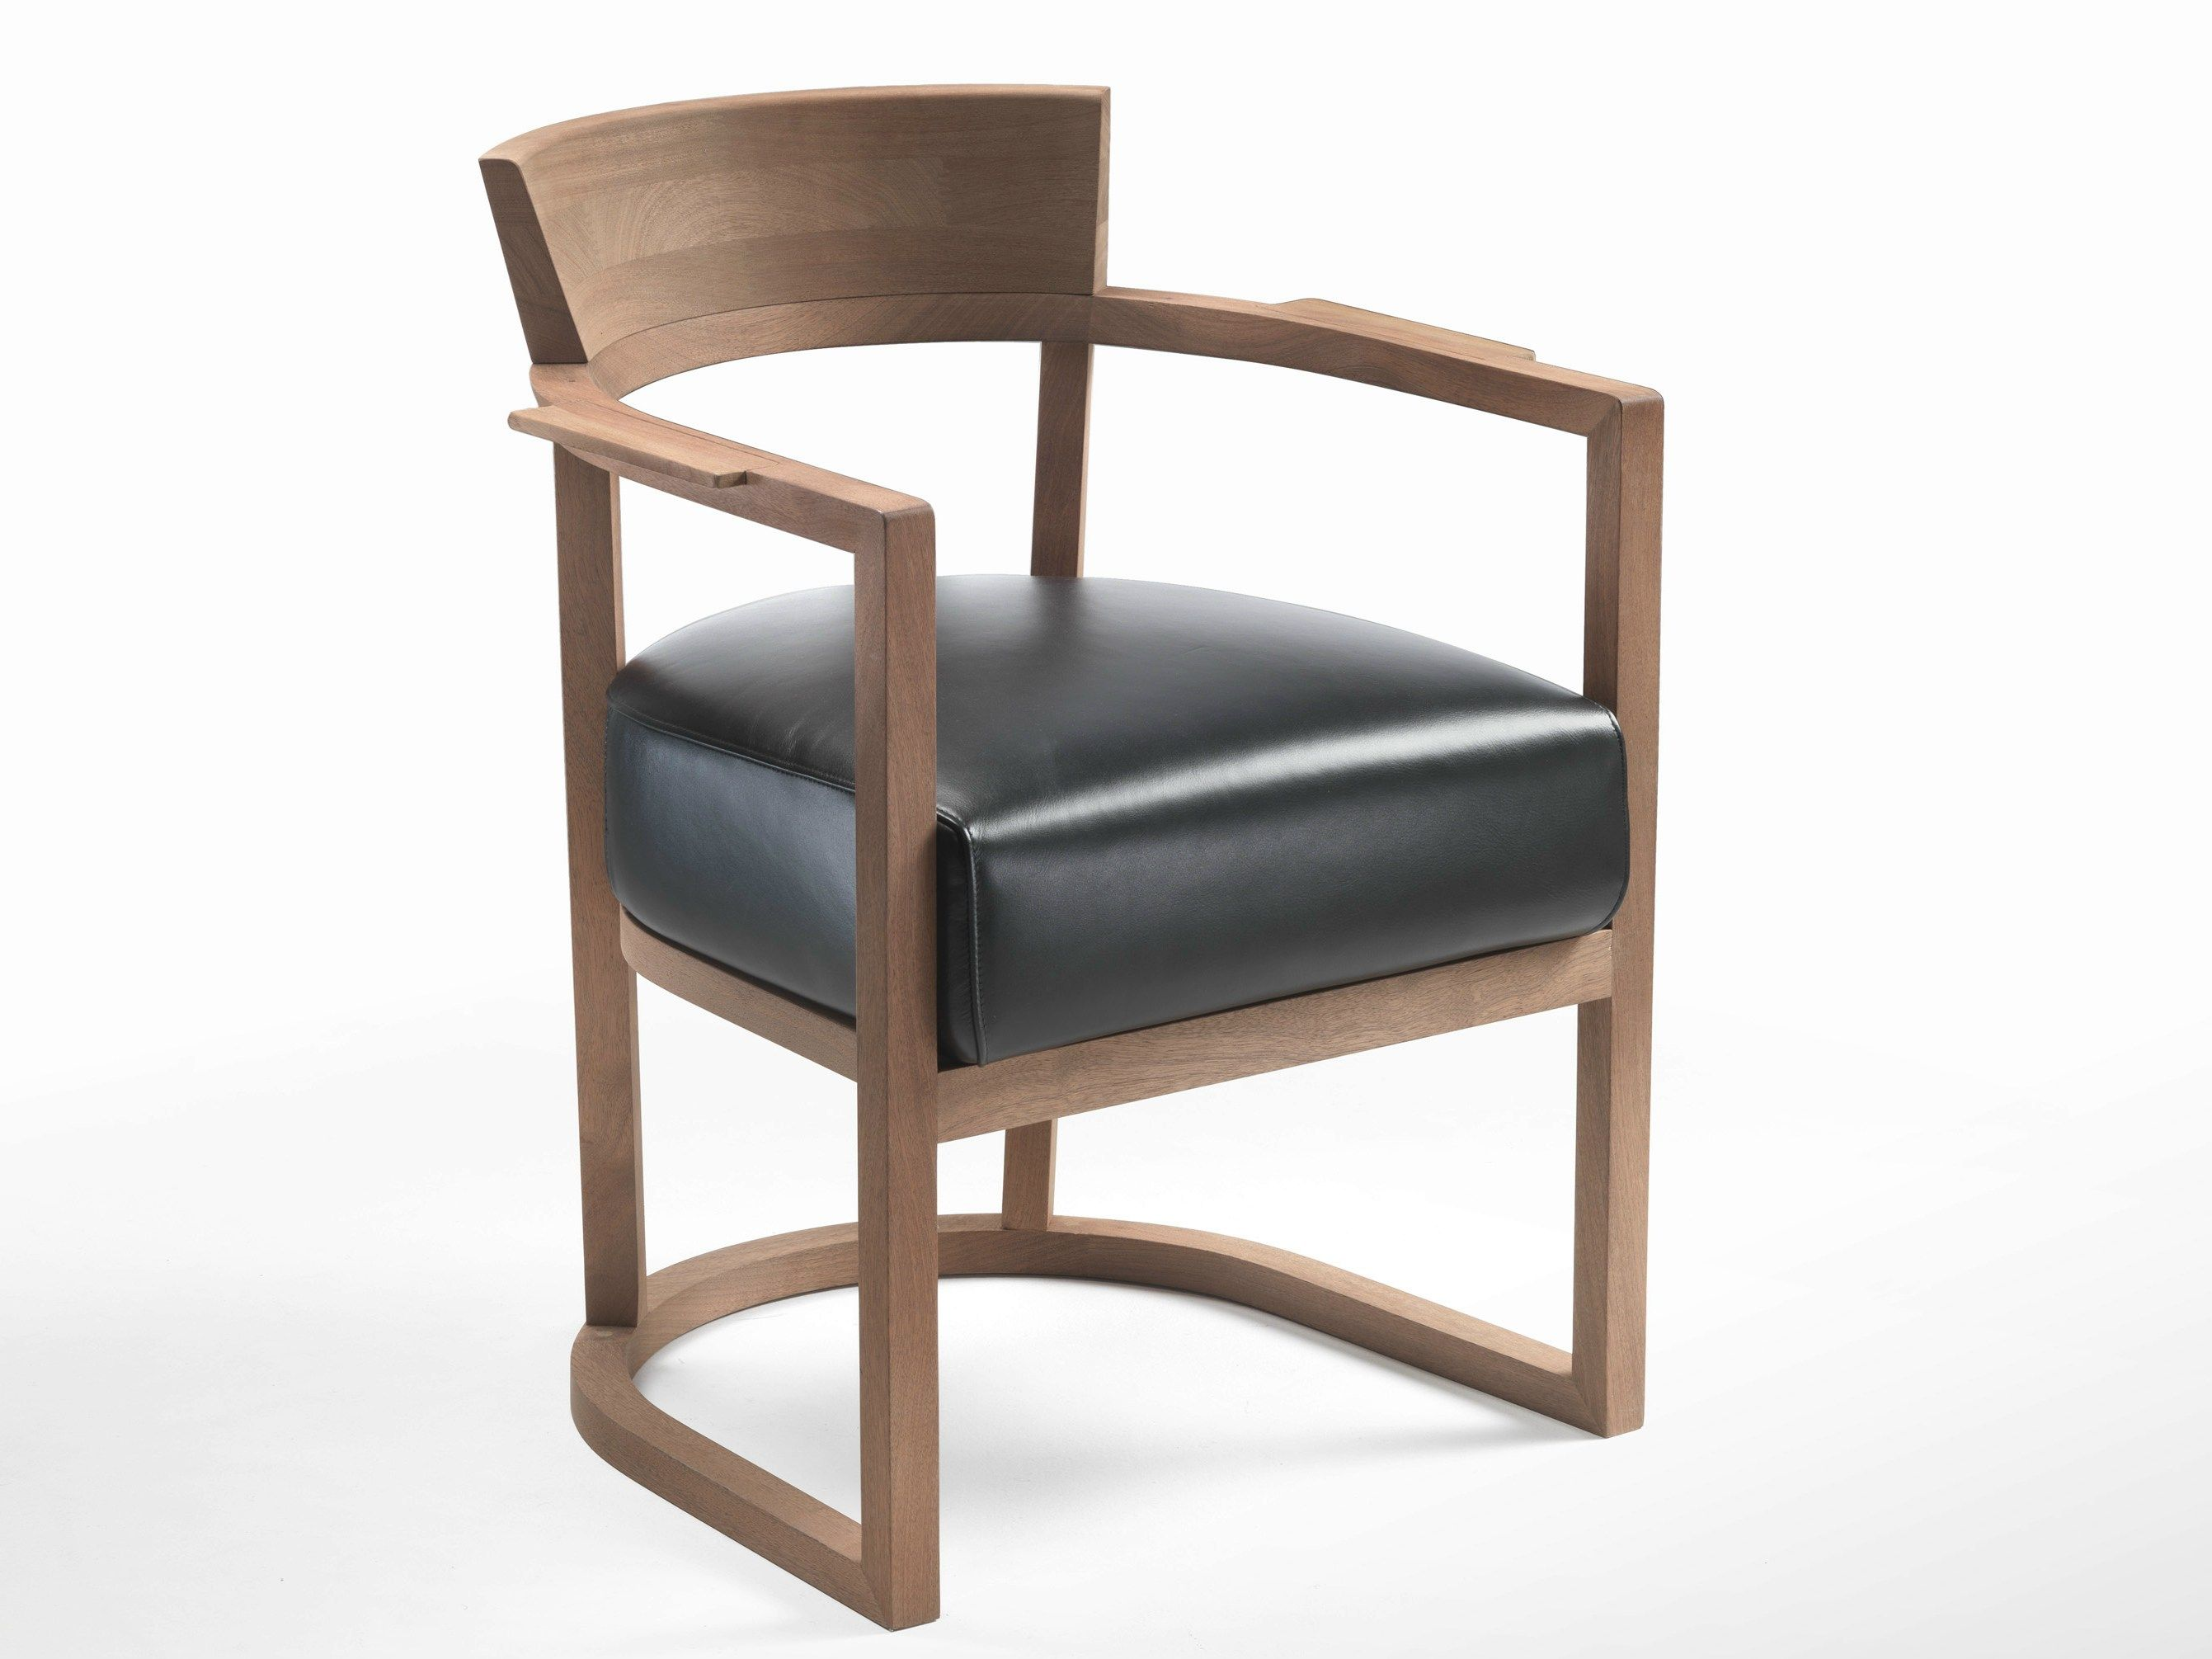 Barchetta Chair By Flexform Armchair Furniture Furniture Upholstered Chairs